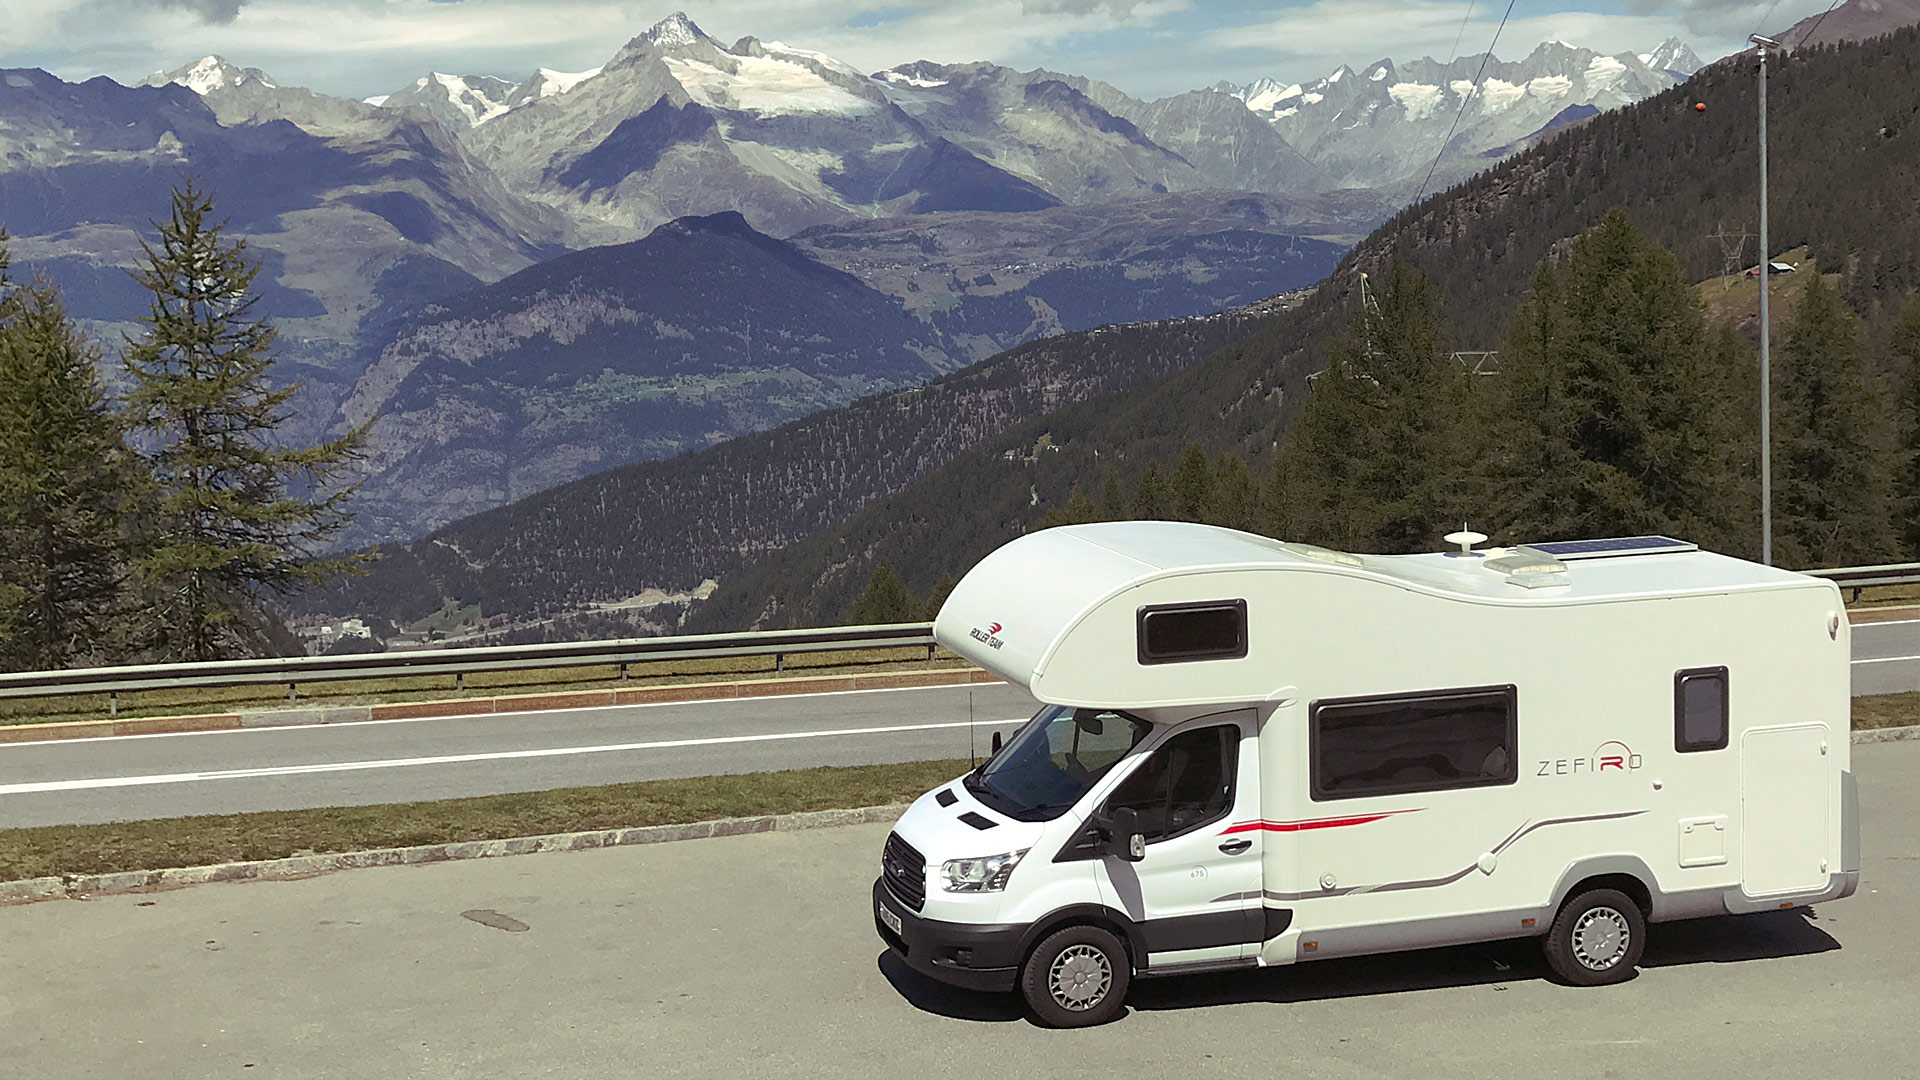 GO WILD - Sussex Motorhome Hire   Rent your own motorhome to